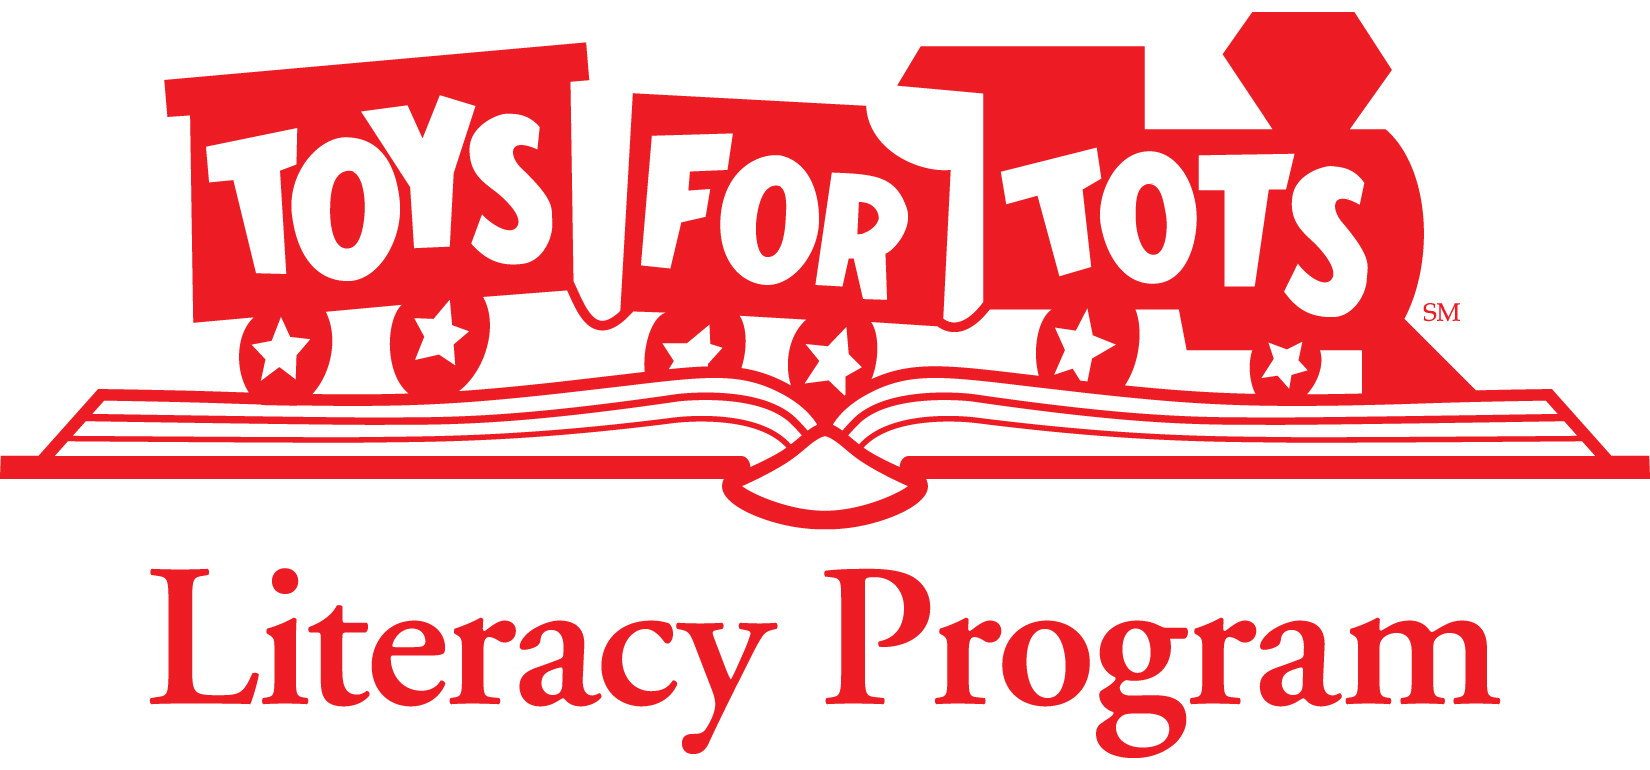 Printable Toys For Tots Logo : Toys for tots literacy program marches into